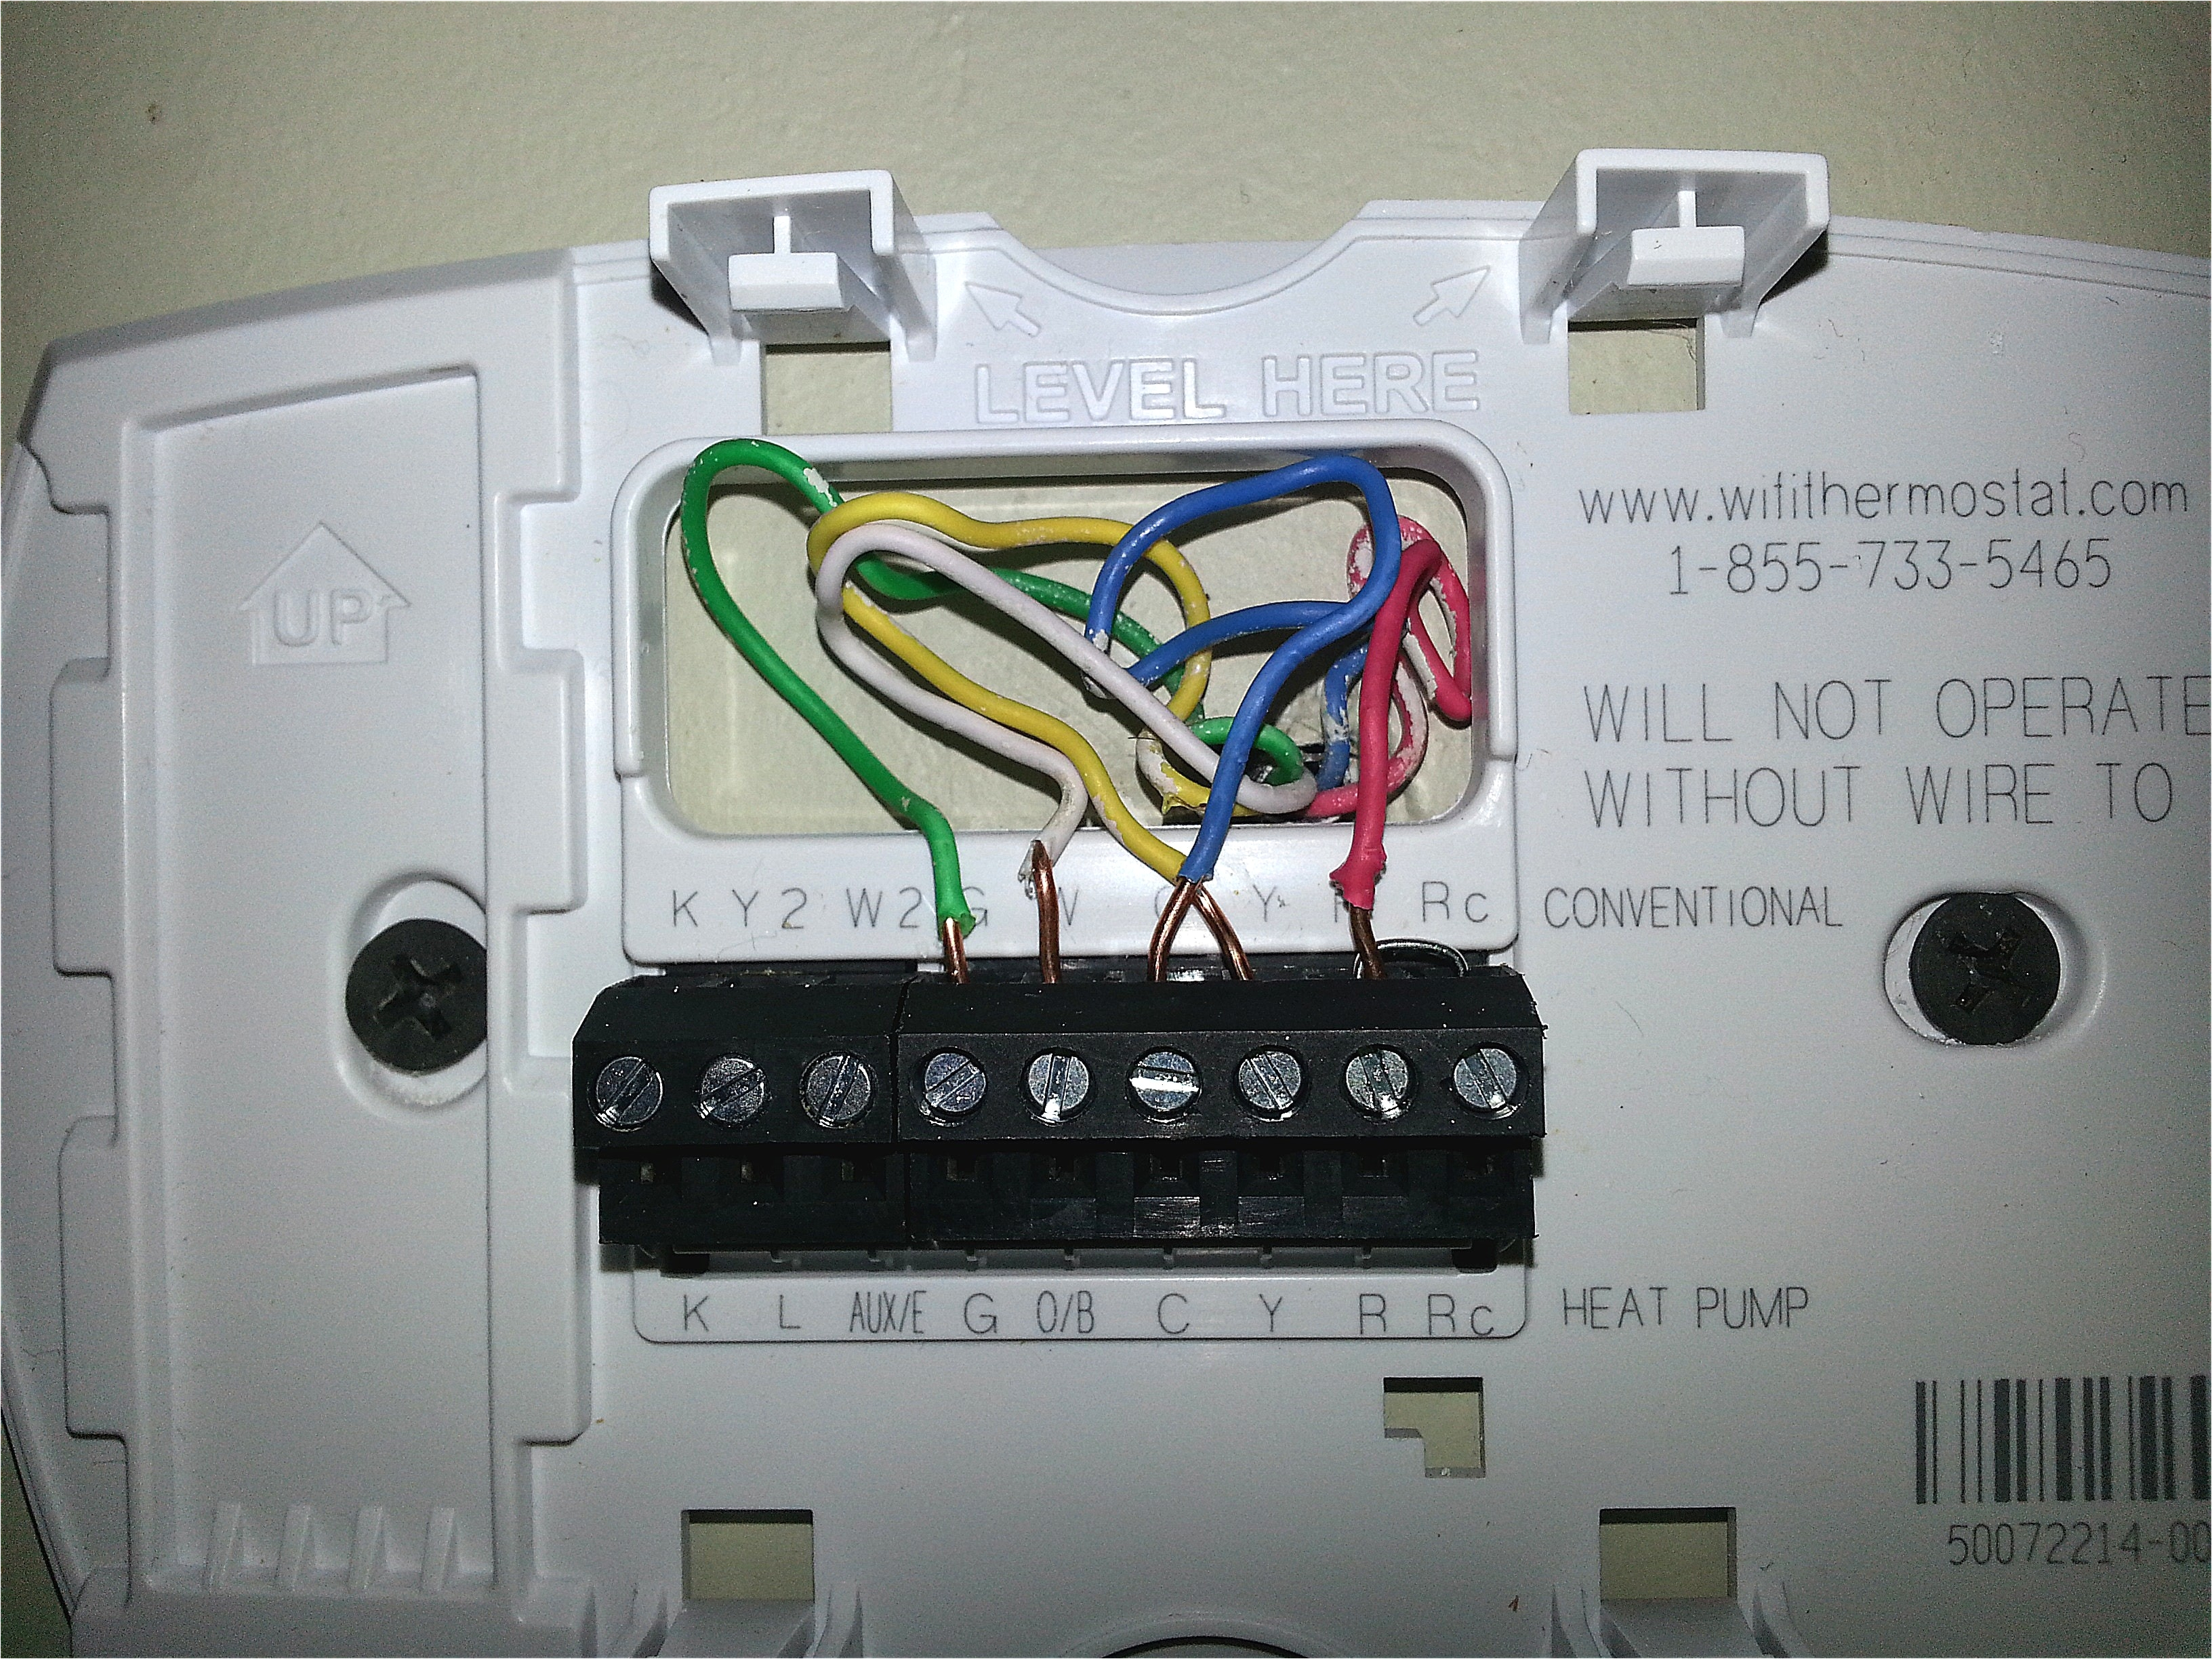 wiring diagram for honeywell thermostat th8320u1008 wiring diagram honeywell mercury thermostat wiring diagram honeywell thermostat diagram wiring